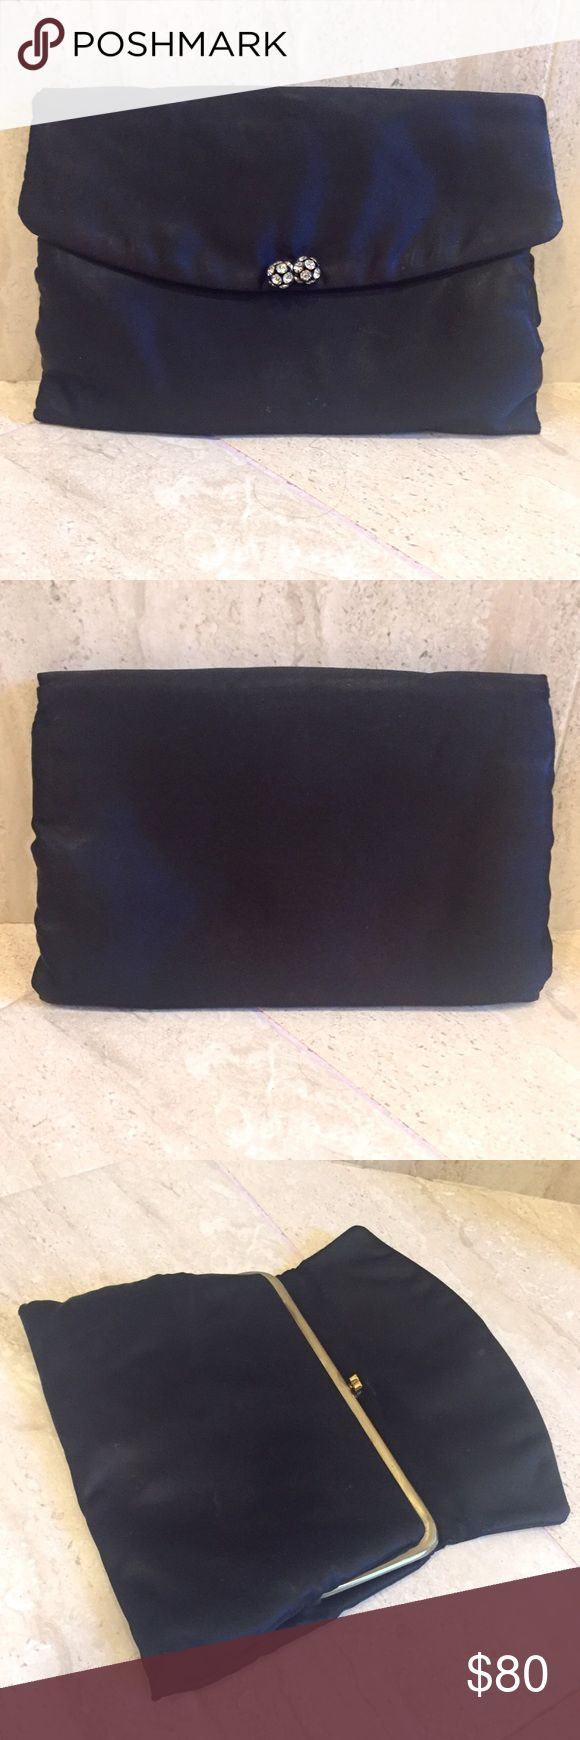 "Satin Formal Clutch This satin black clutch is a gorgeous addition to your formal attire. Two simple crystal ball shape additions to the front make it a very classy look. Inside there's a mini coin purse attached. Great condition.  9"" long at bottom and 8"" at top. Height is about 6"". Bags Clutches & Wristlets"